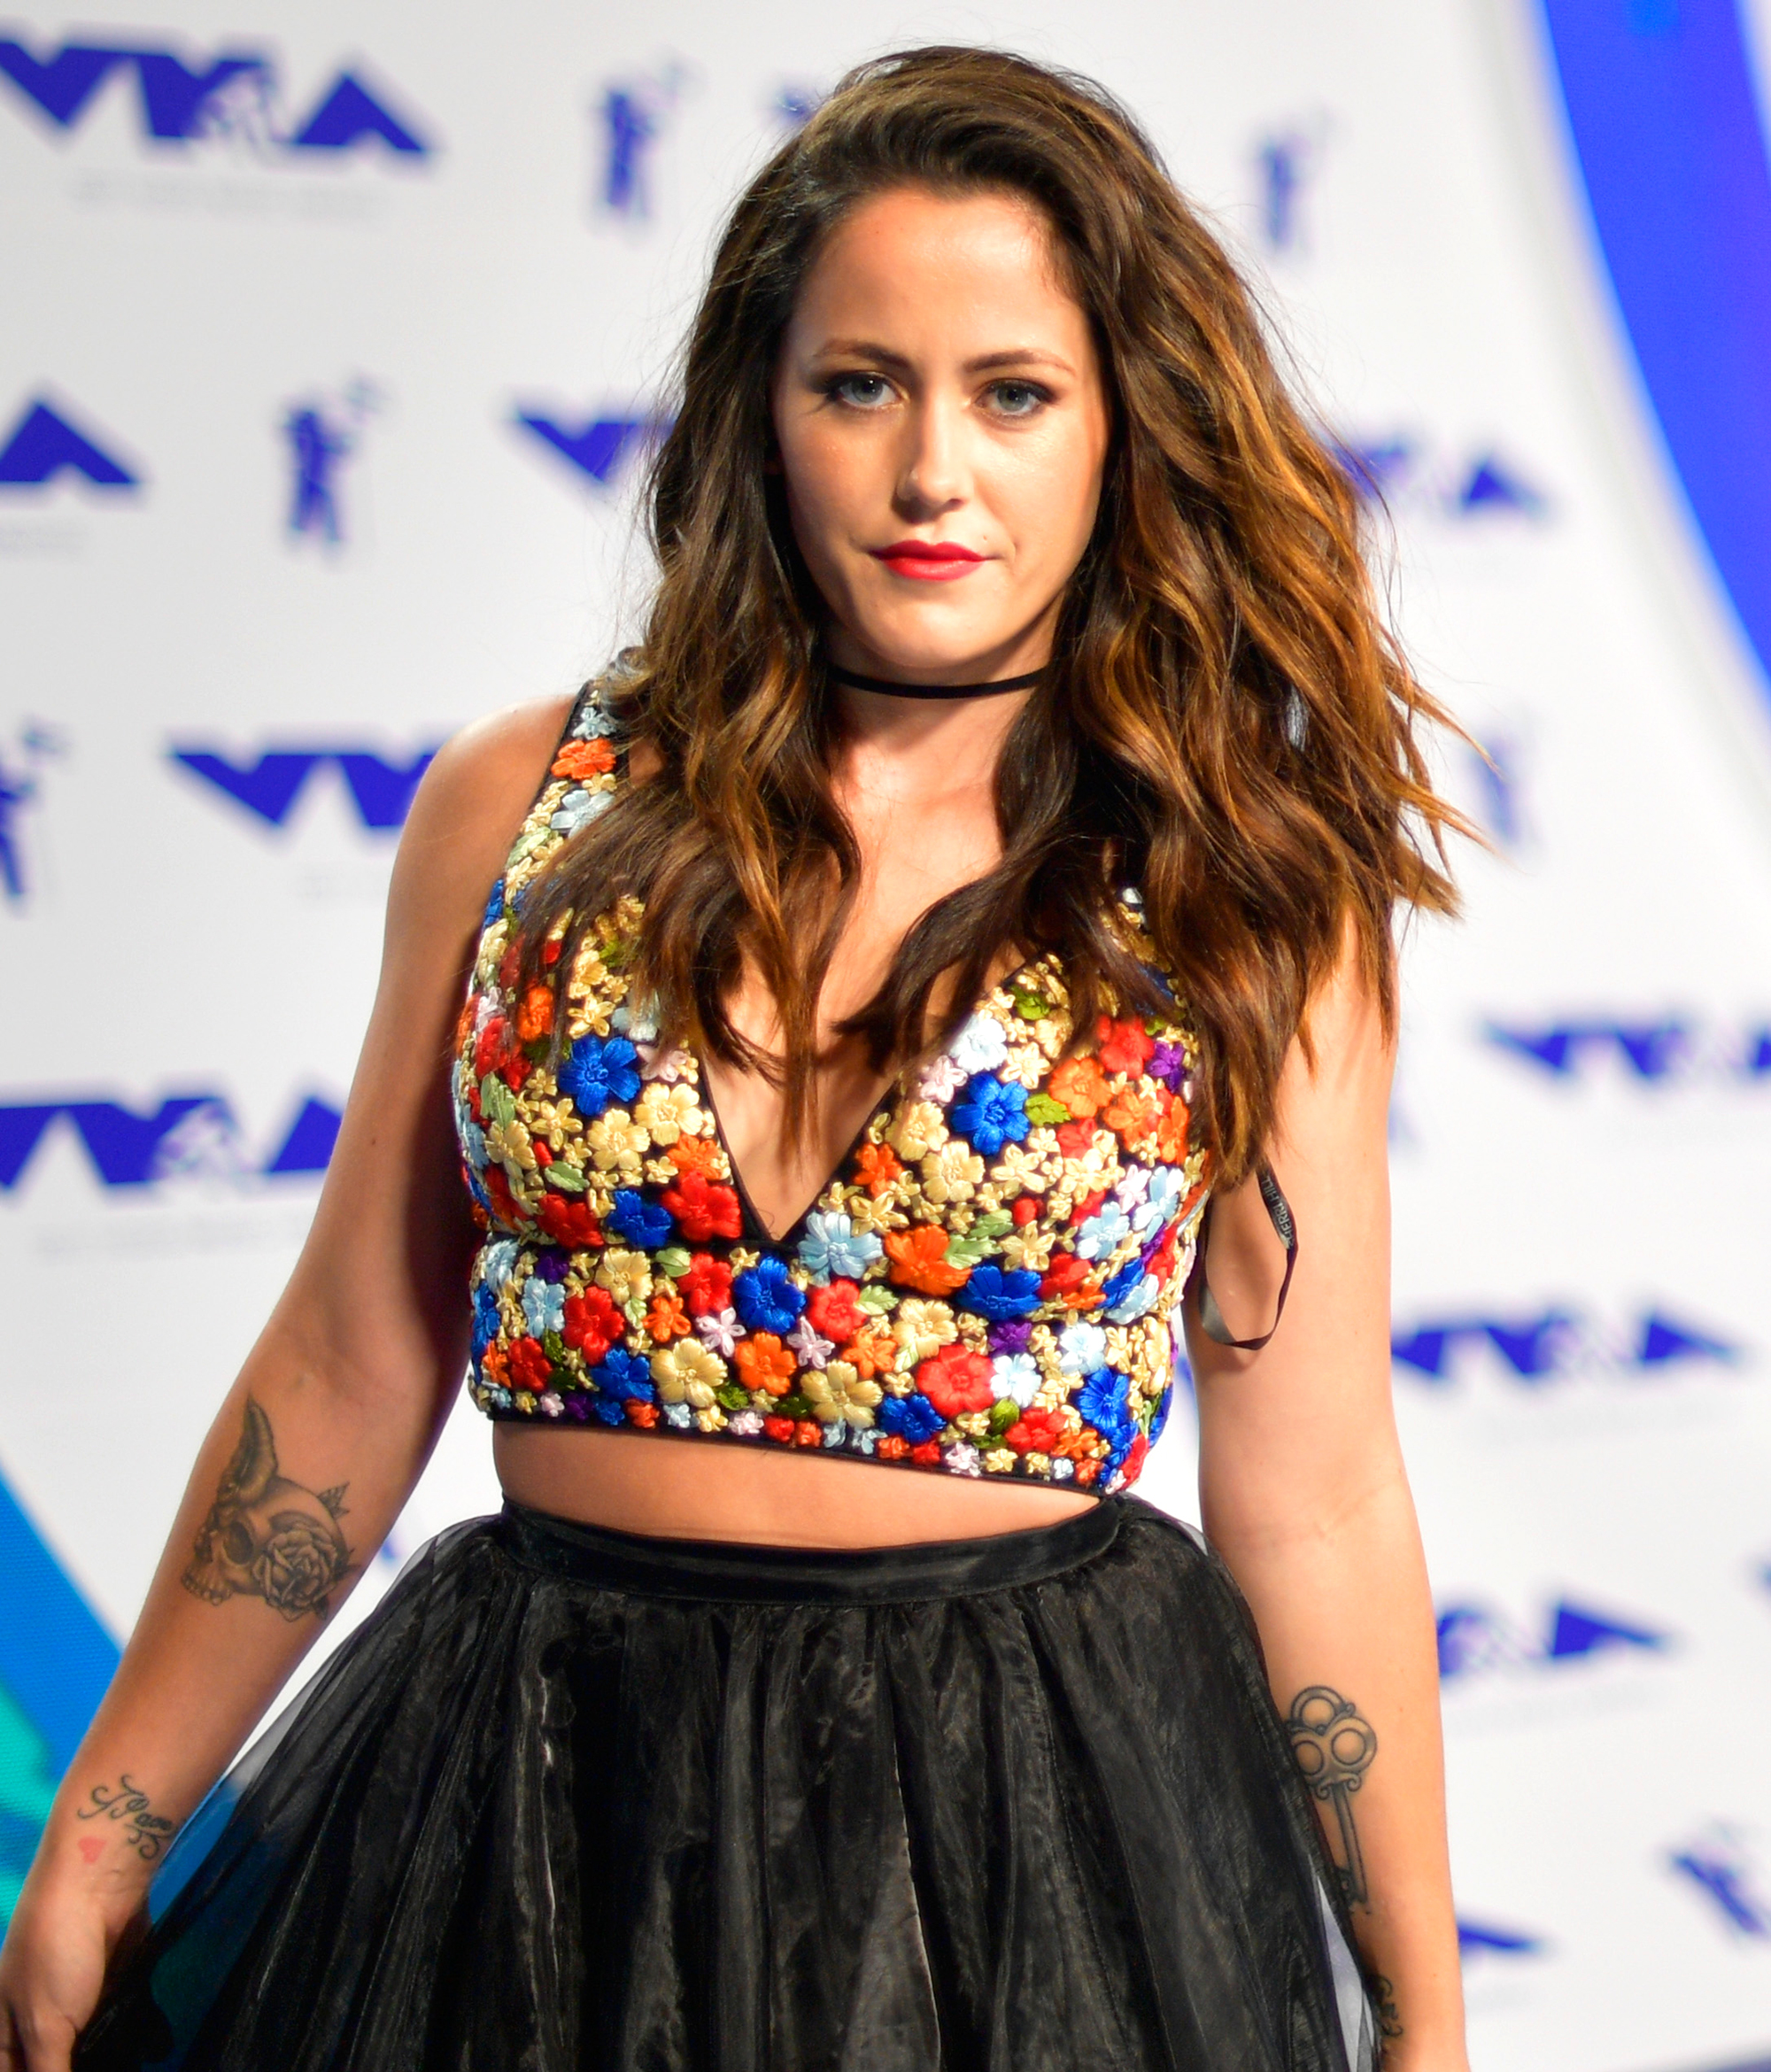 Jenelle Evans Allegedly Pulled a Gun During Road Rage Incident